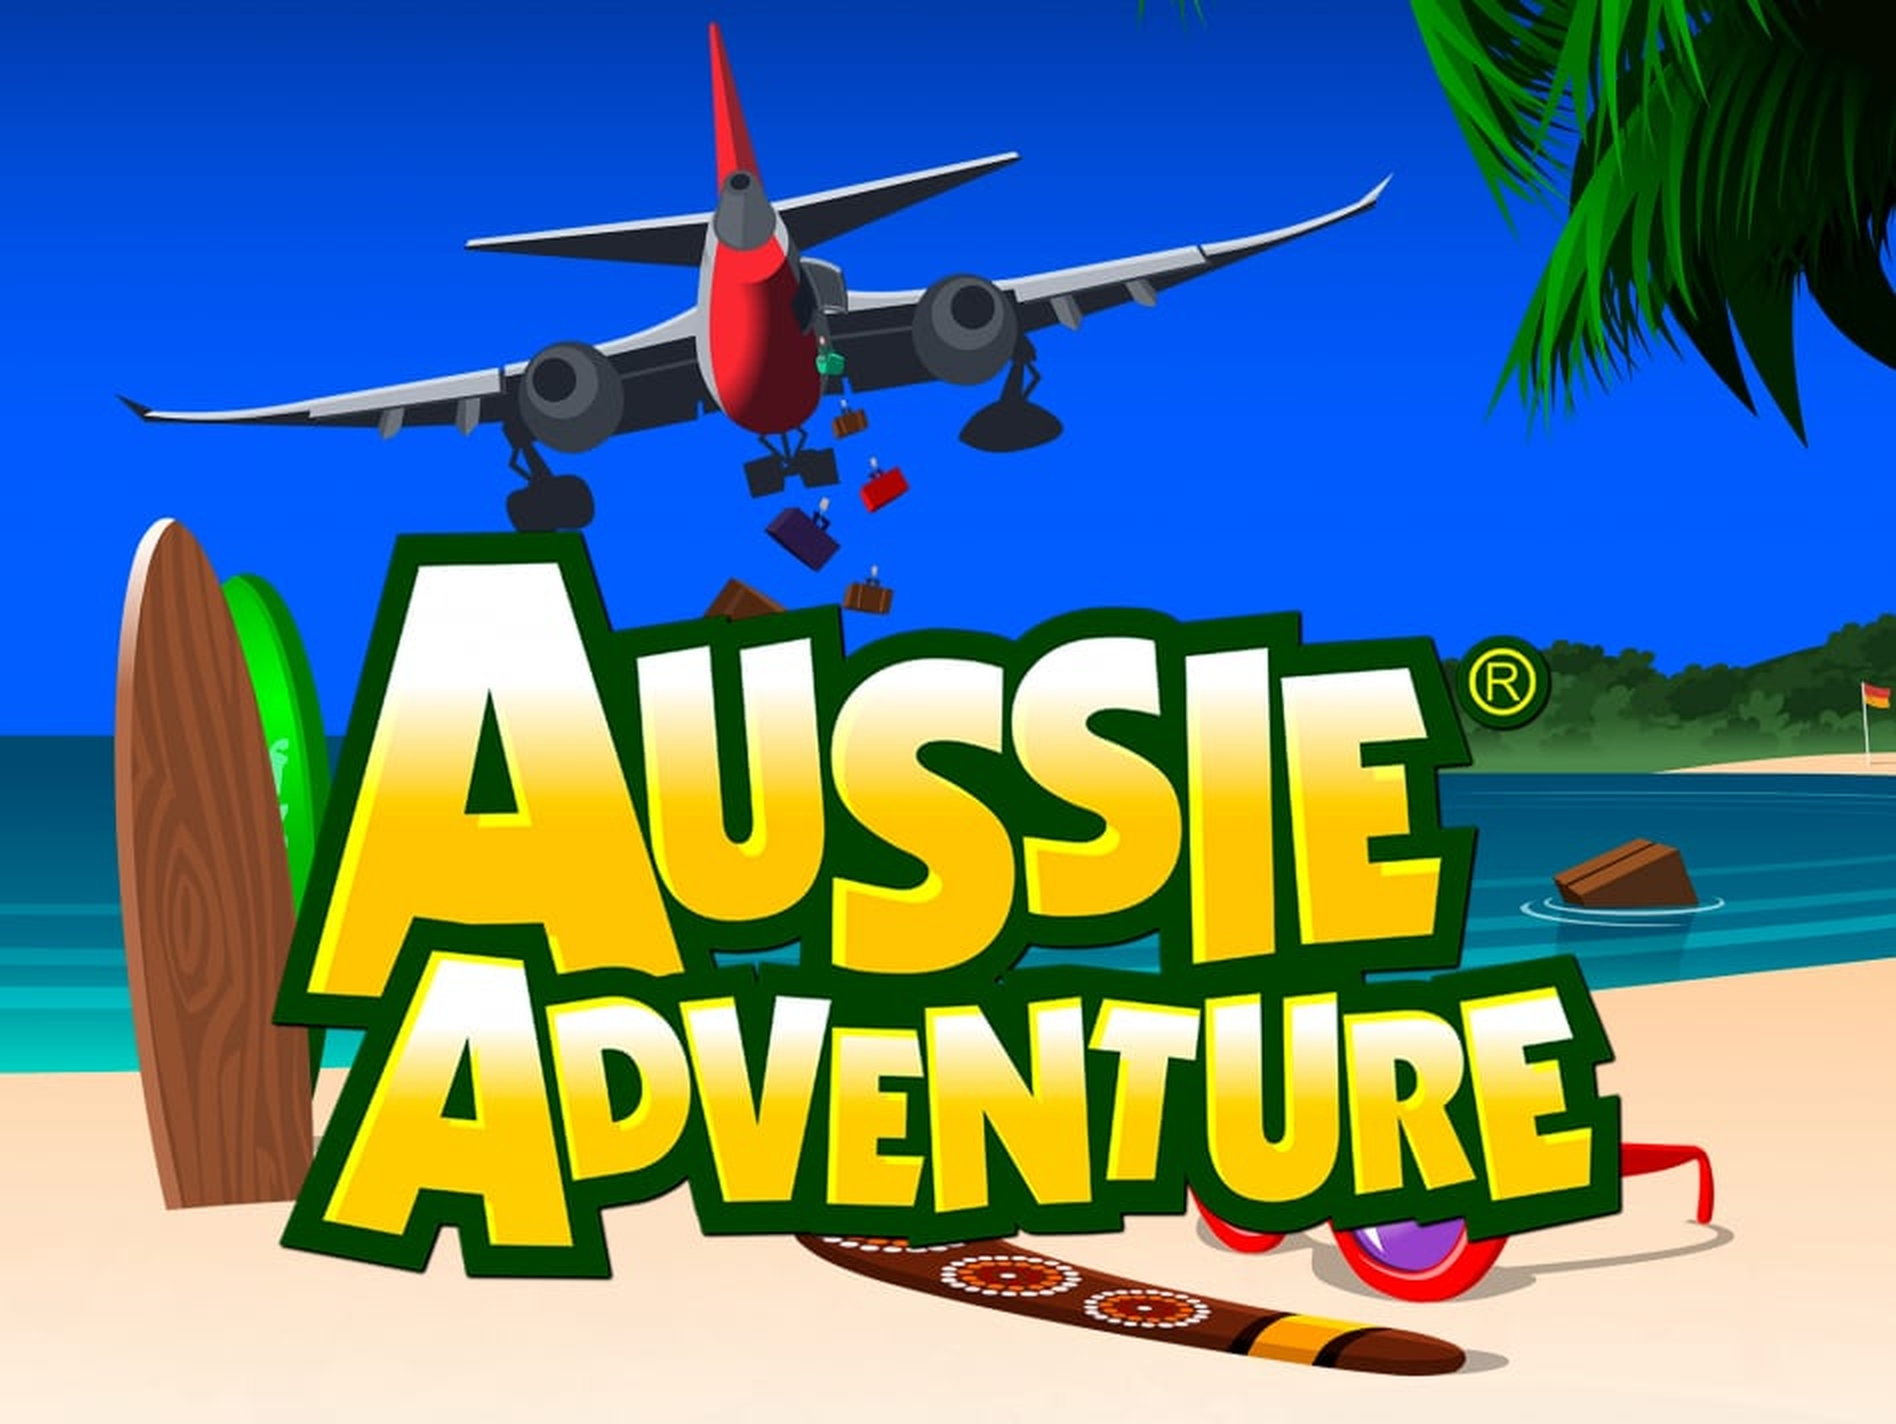 The Aussie Adventure Online Slot Demo Game by Realistic Games